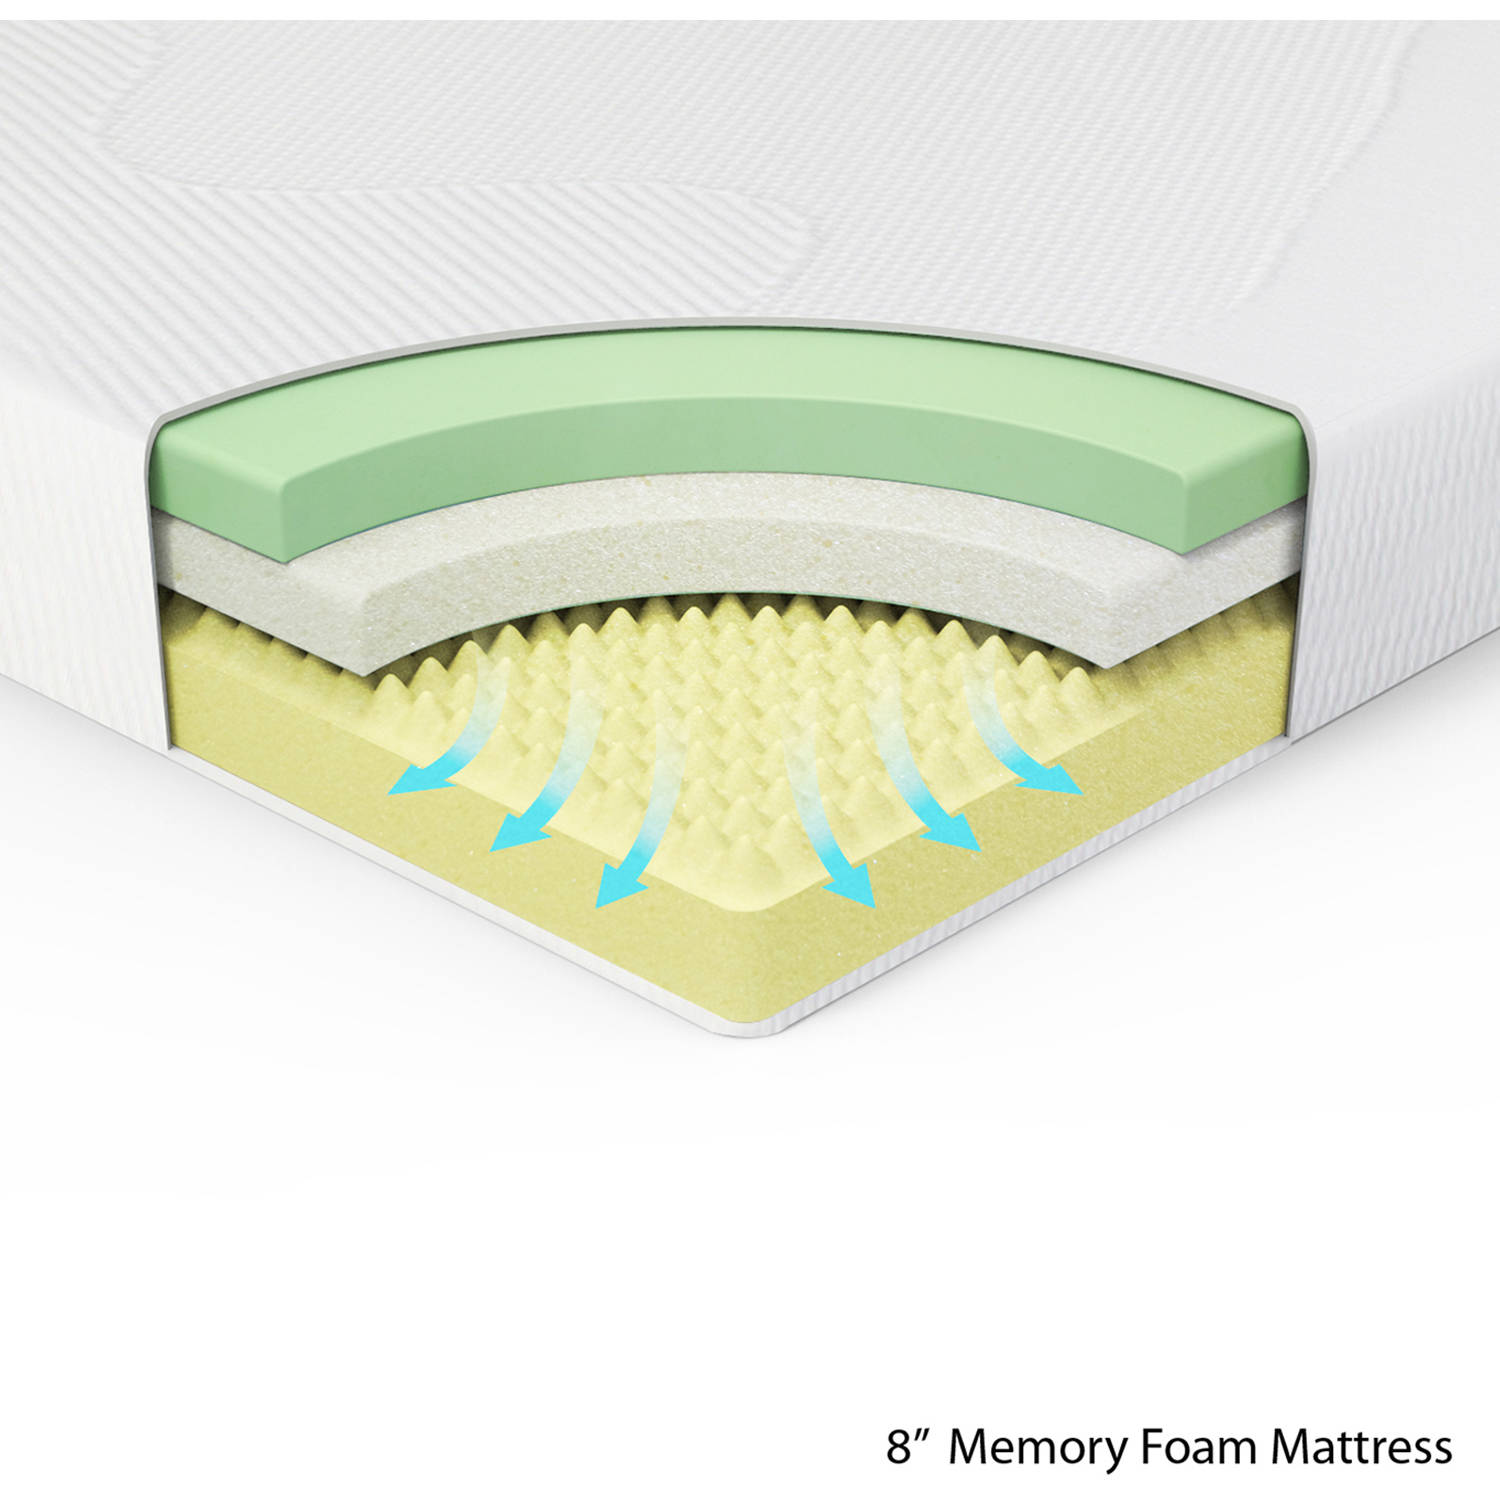 Memory mattress 28 images pluses and minuses of a for Best foam mattress